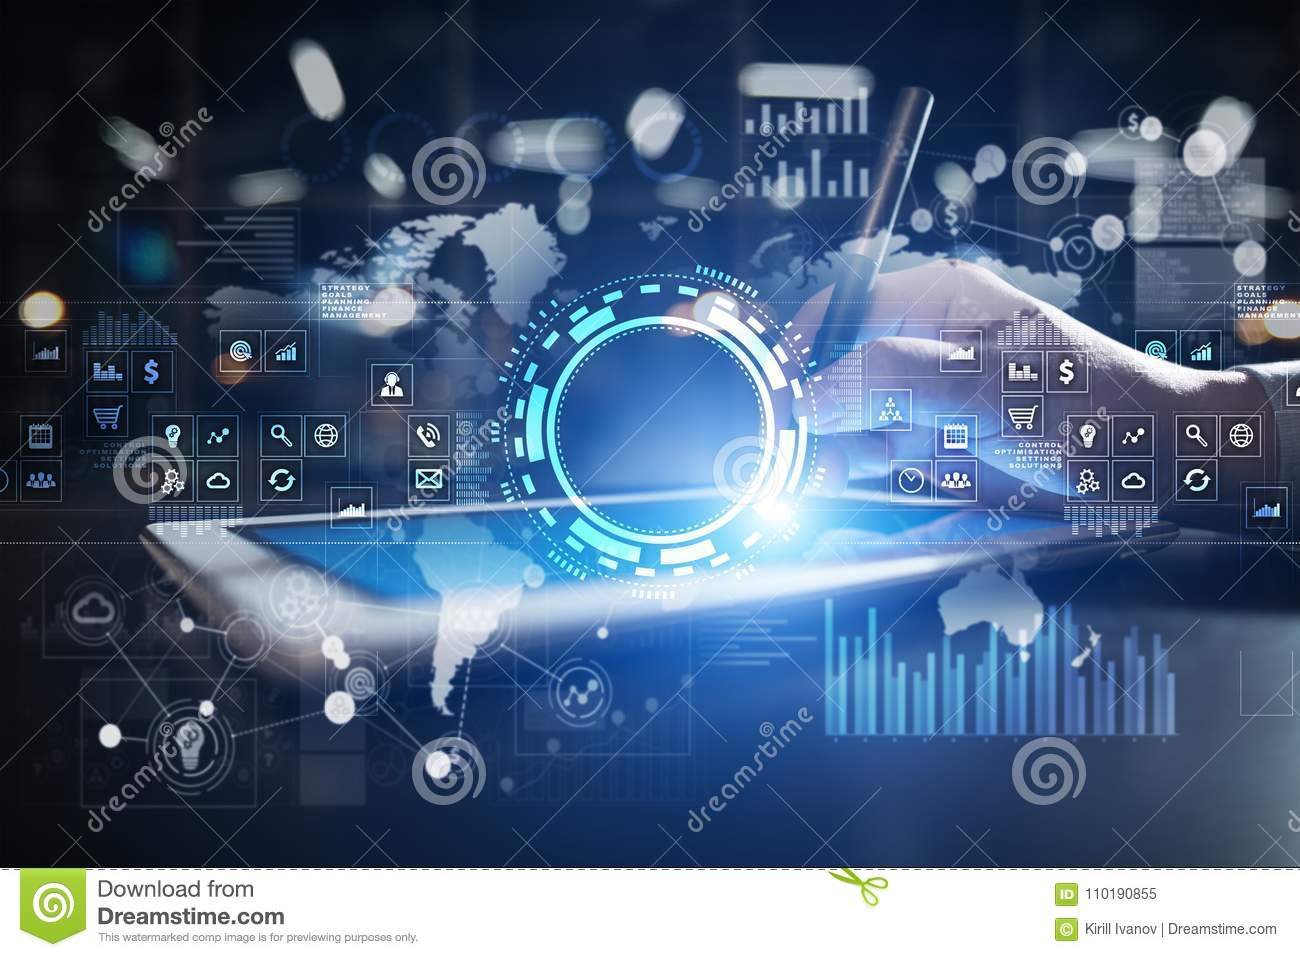 Internet, Business and technology concept. Icons, diagrams and graphs background on virtual screen.